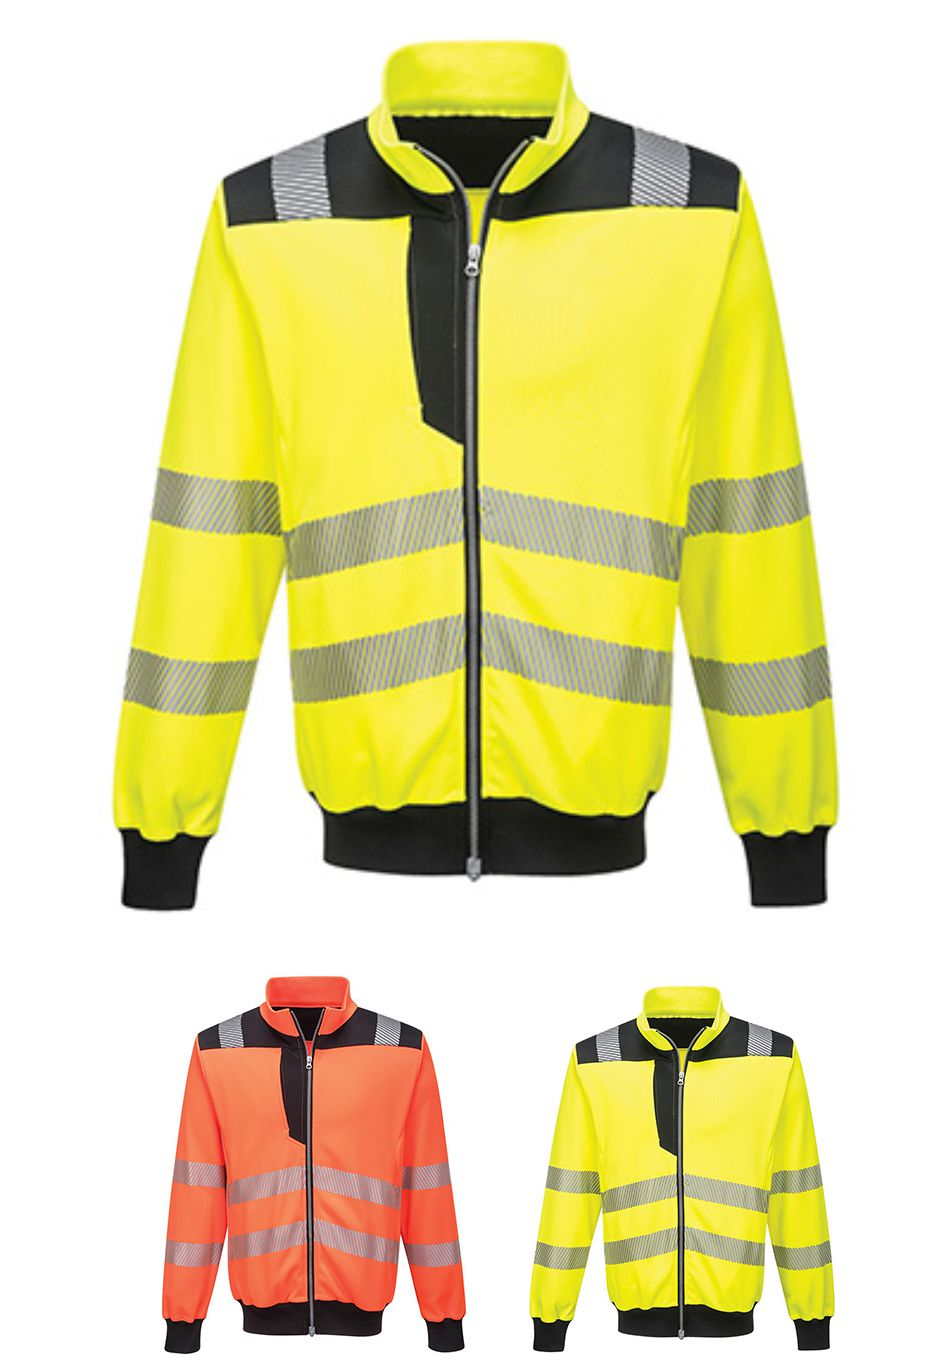 PW370 Portwest PW3 Hi Vis Sweatshirt